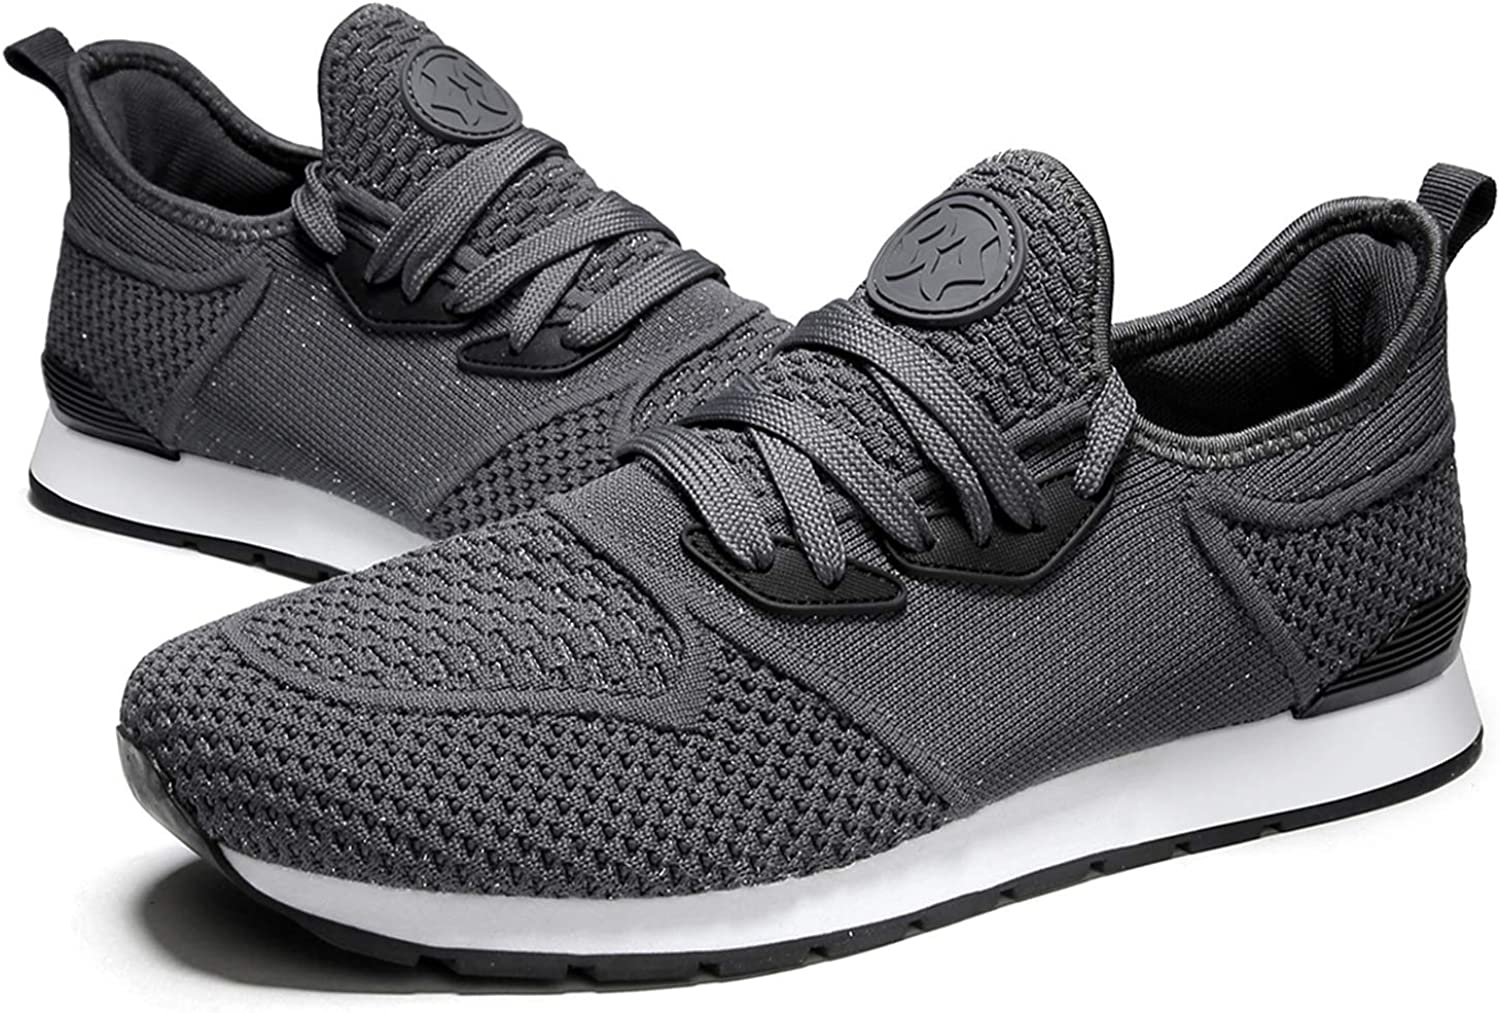 Womens Trainers Mens Sneakers Lightweight Running Shoes Gym Sport Fitness Walking Shoes